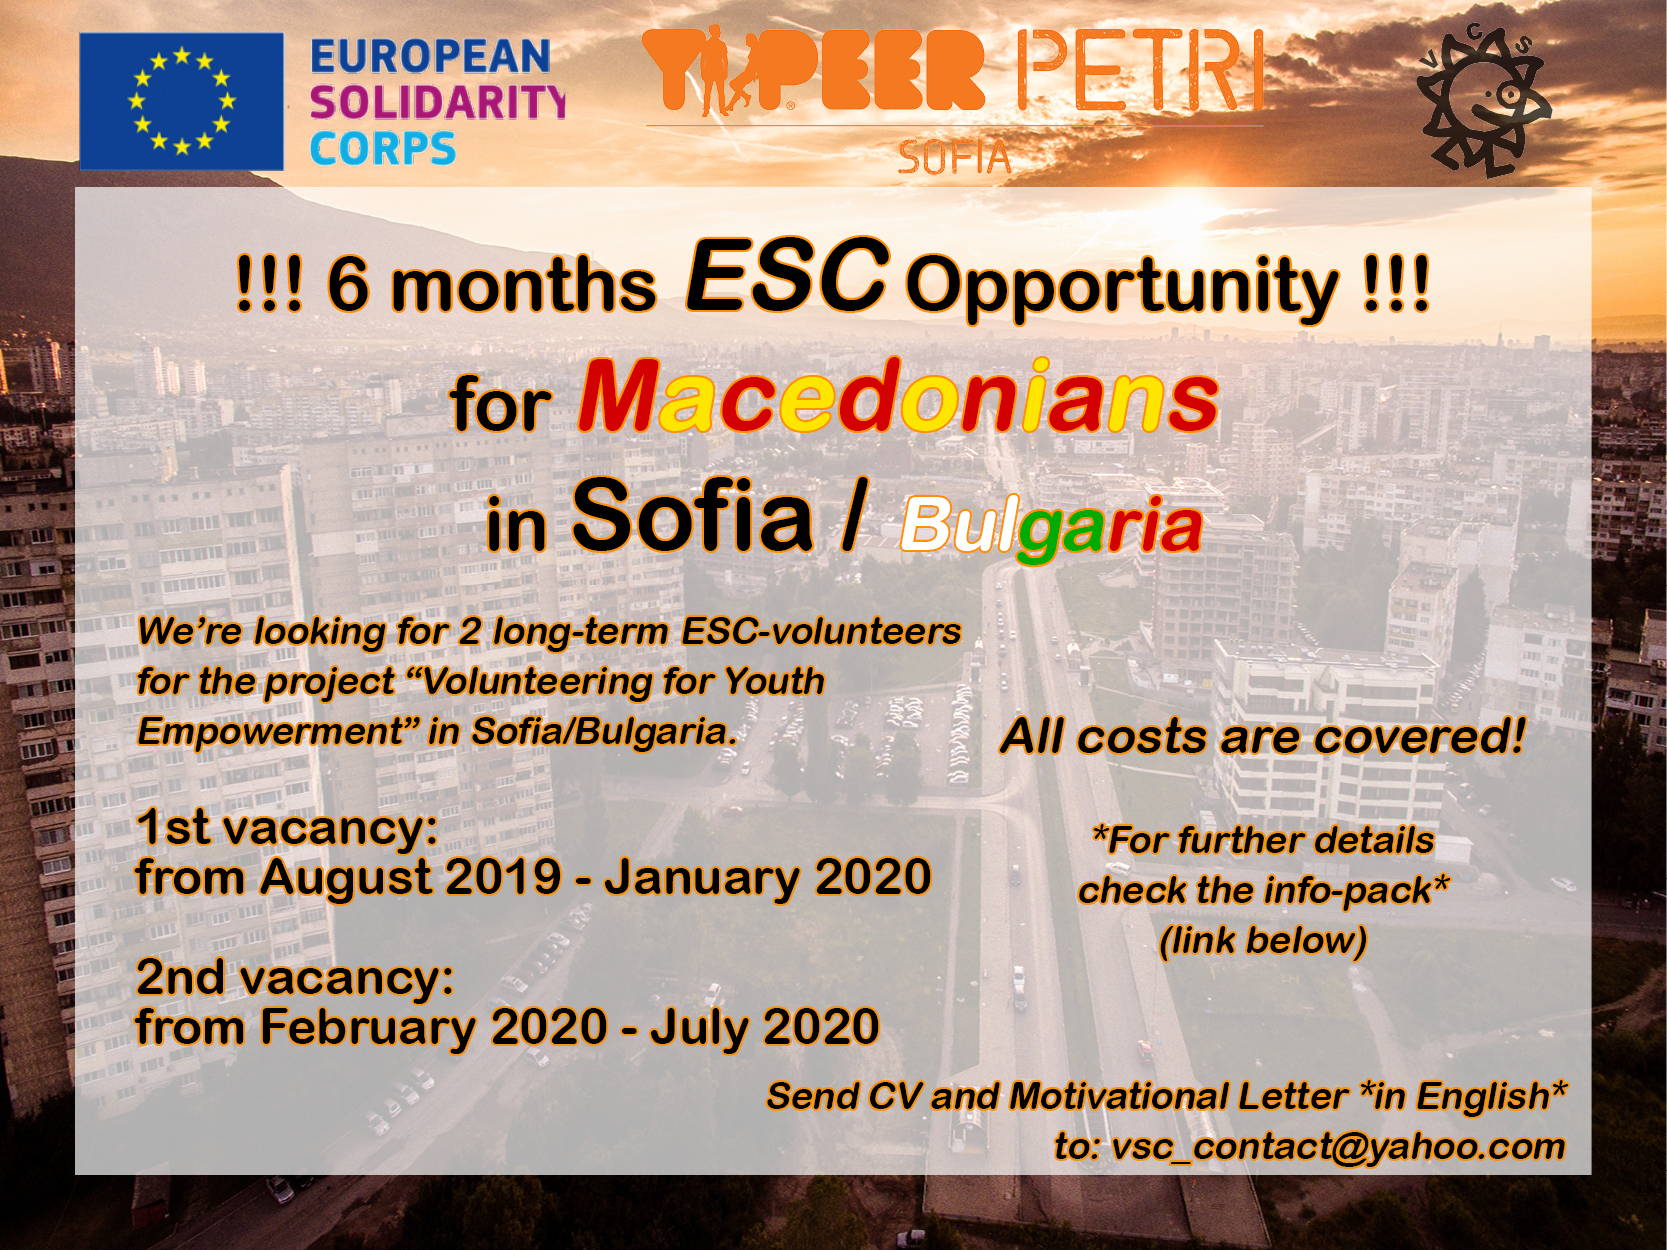 CALL FOR VOLUNTEERS FOR ESC-PROJECT IN SOFIA/BULGARIA